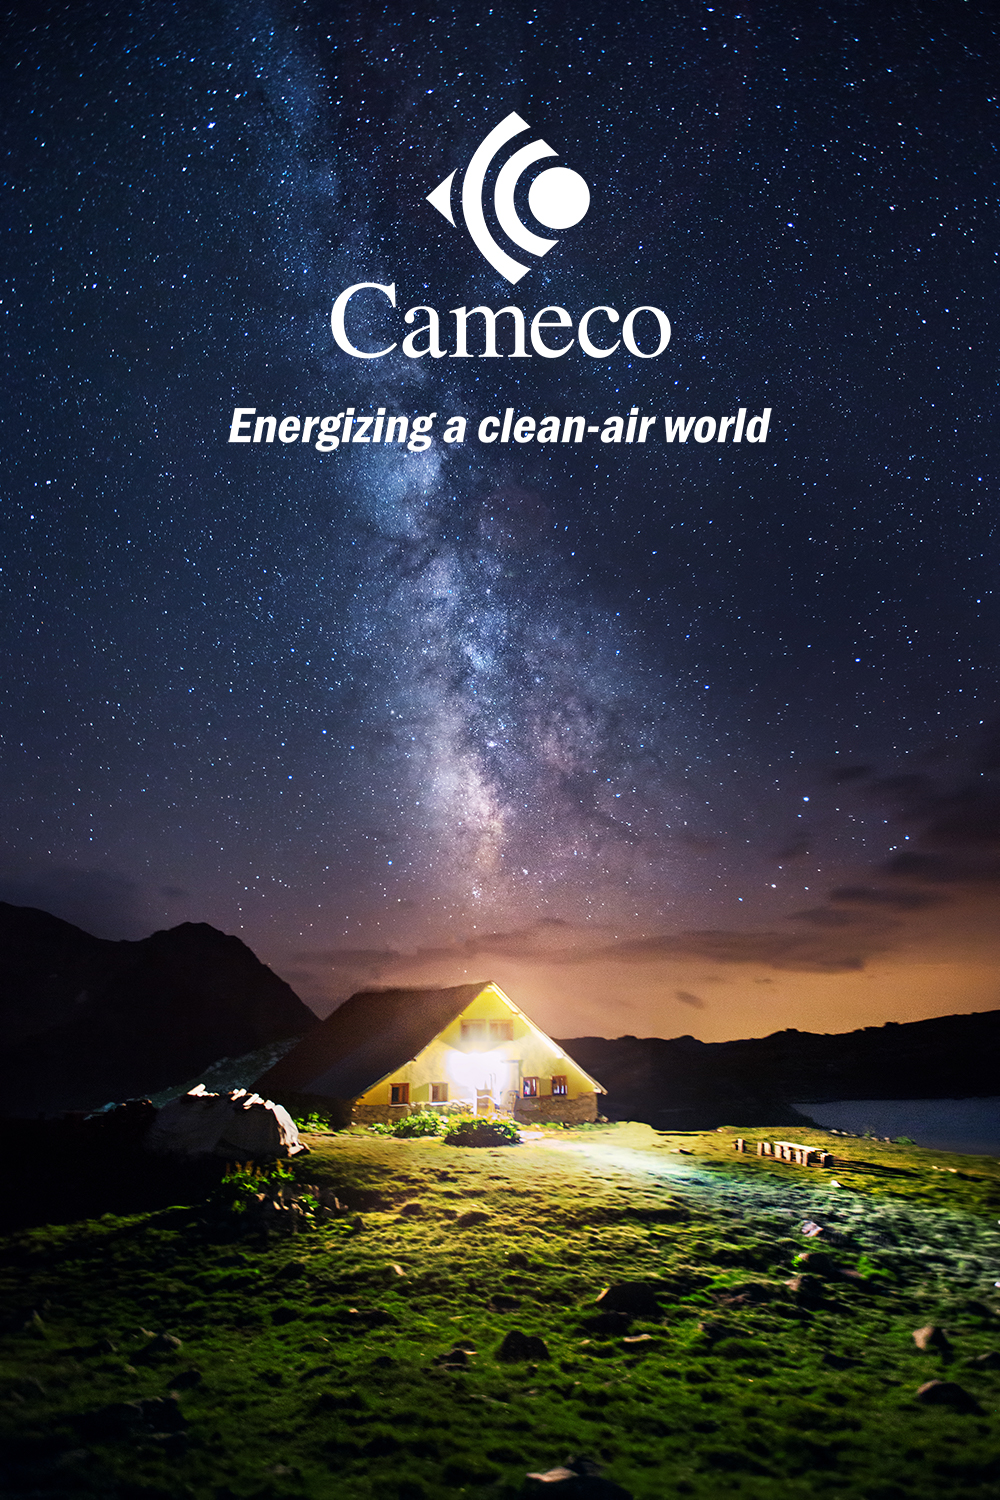 Cameco - Energizing a clean-air world